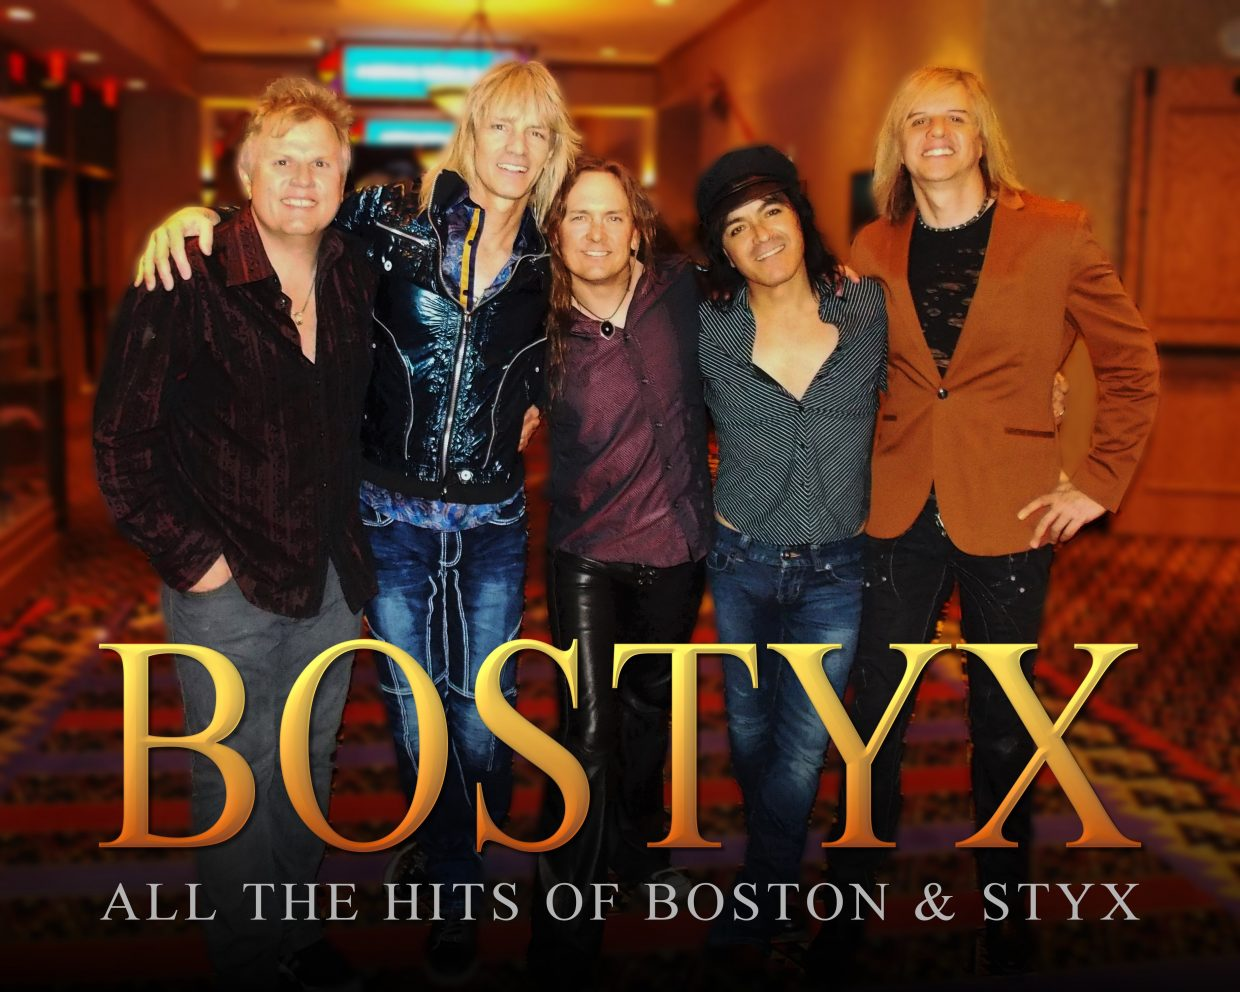 Tickets are on sale for BOSTYX Unplugged featuring David Victor, formerly of Boston, at Strings Music Festival. The show is slated for 7 p.m. Sept. 9.